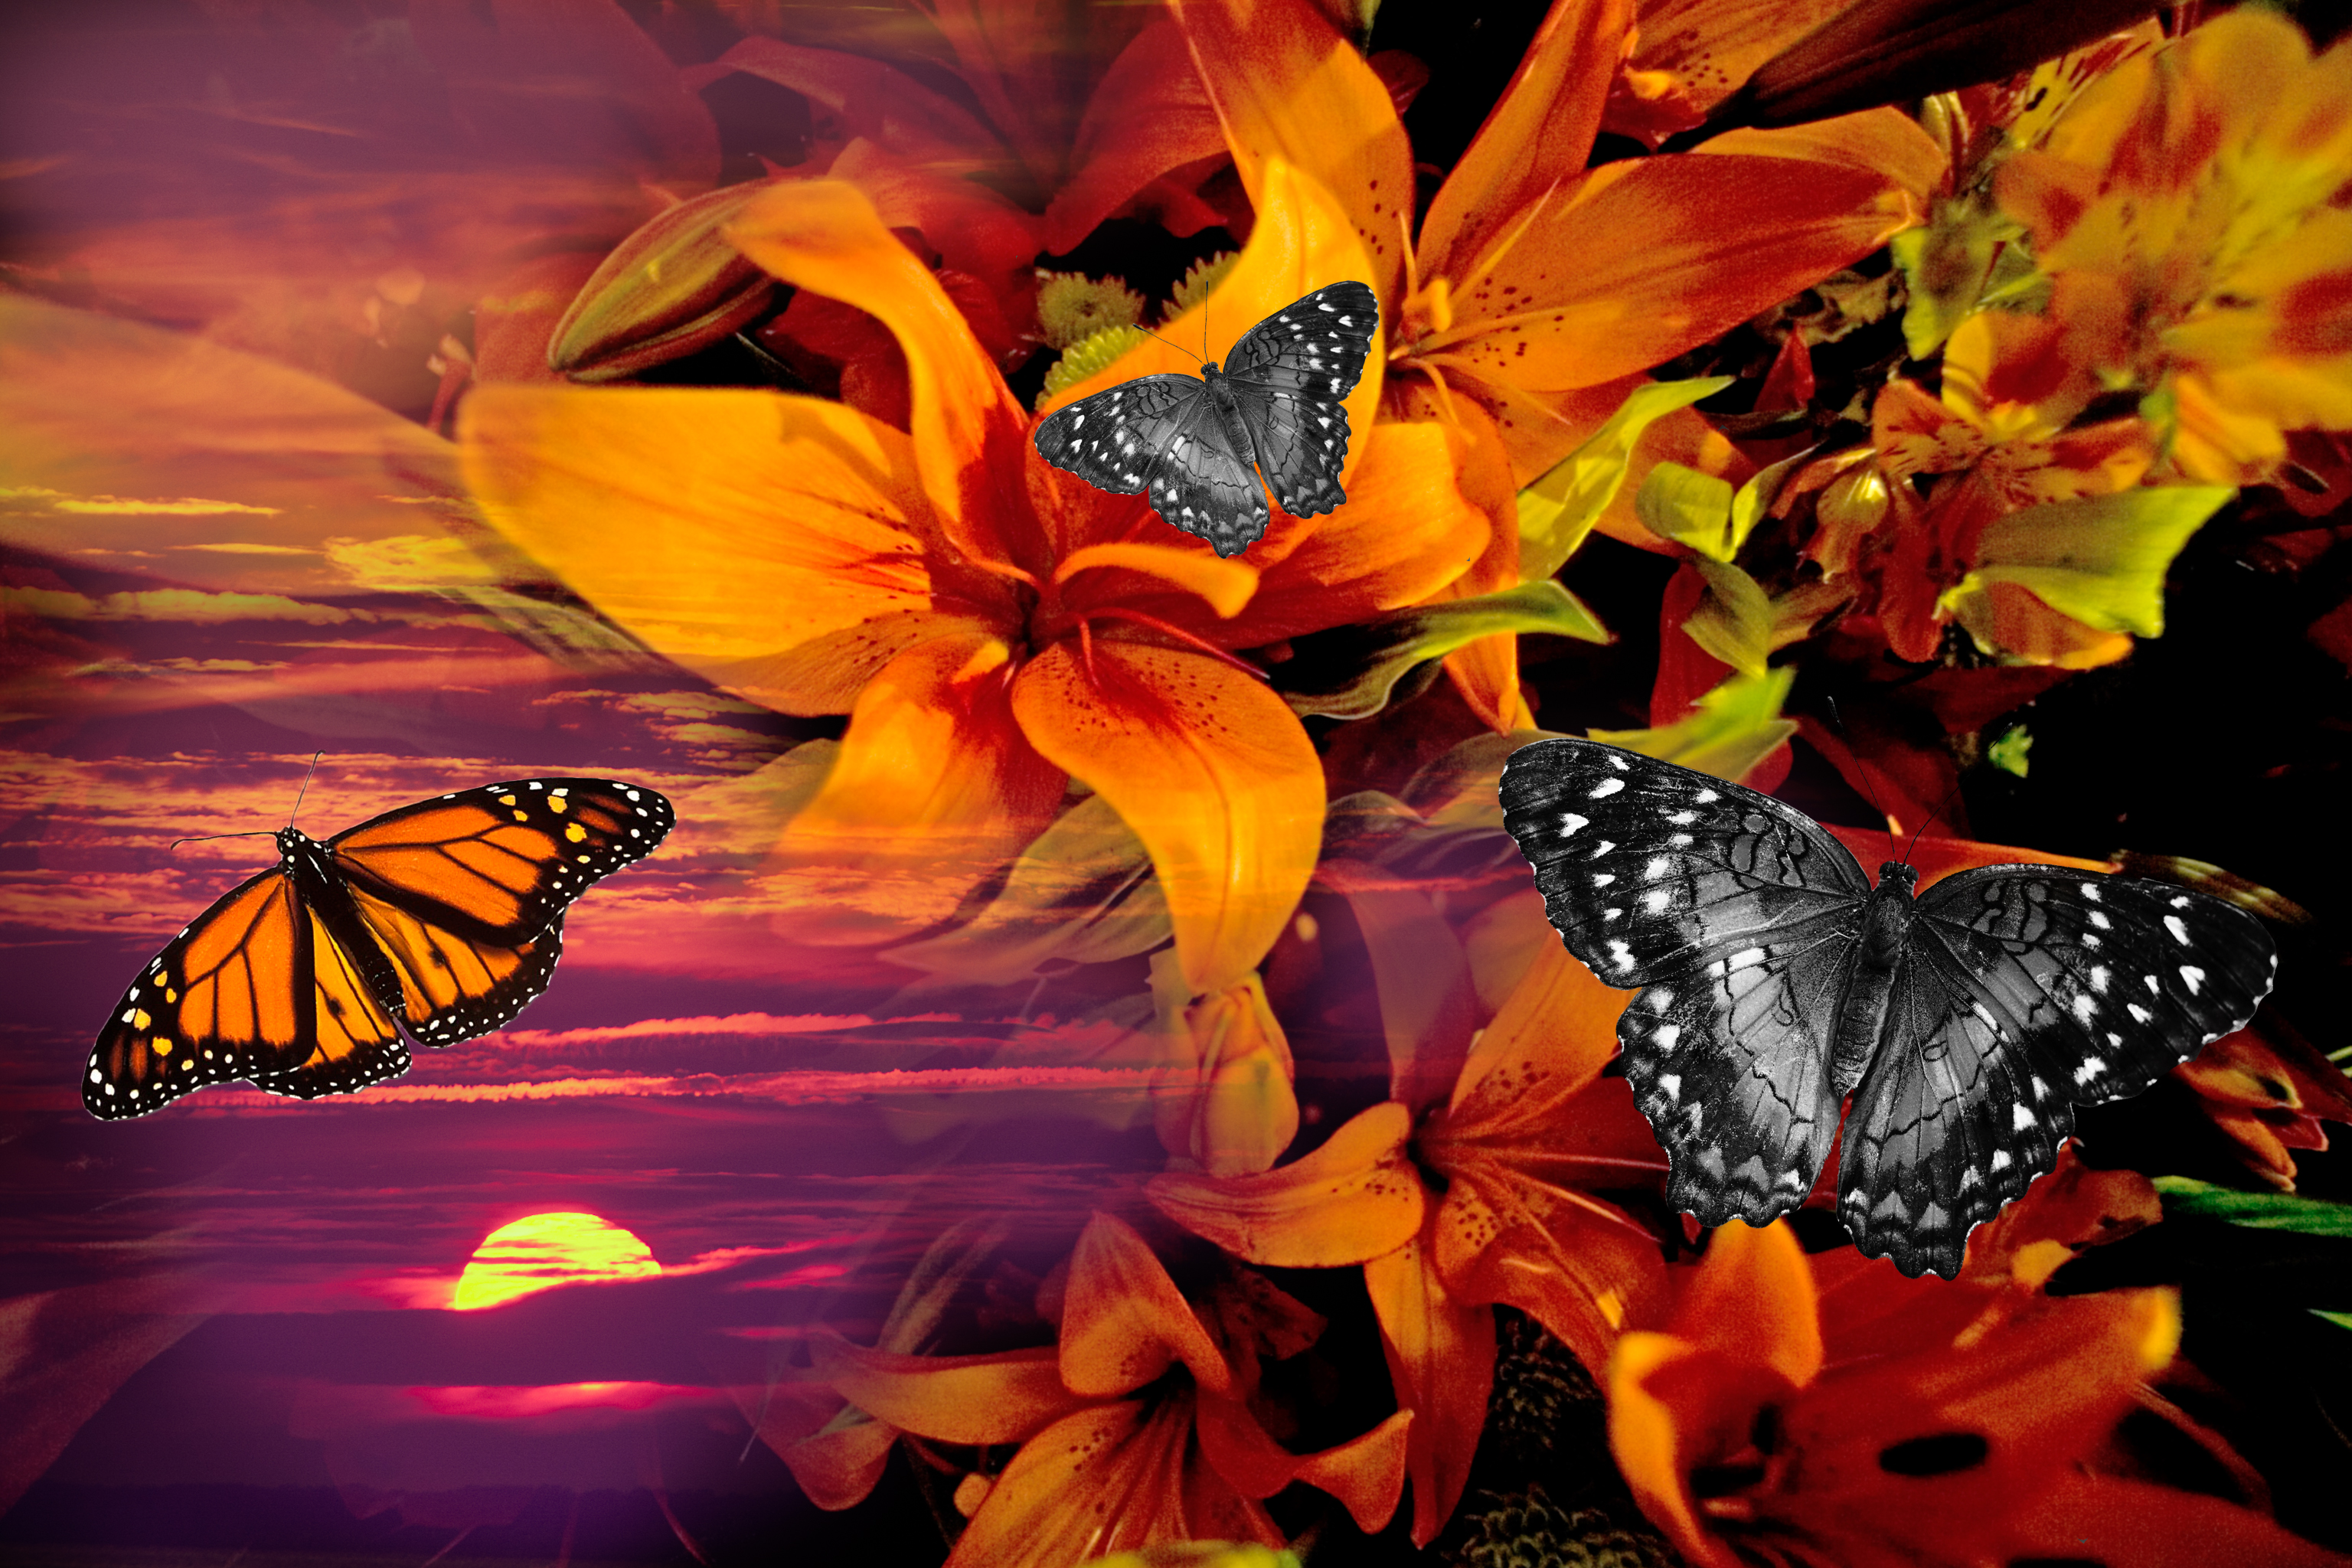 Orange Sunrise Flowers with Butterflies